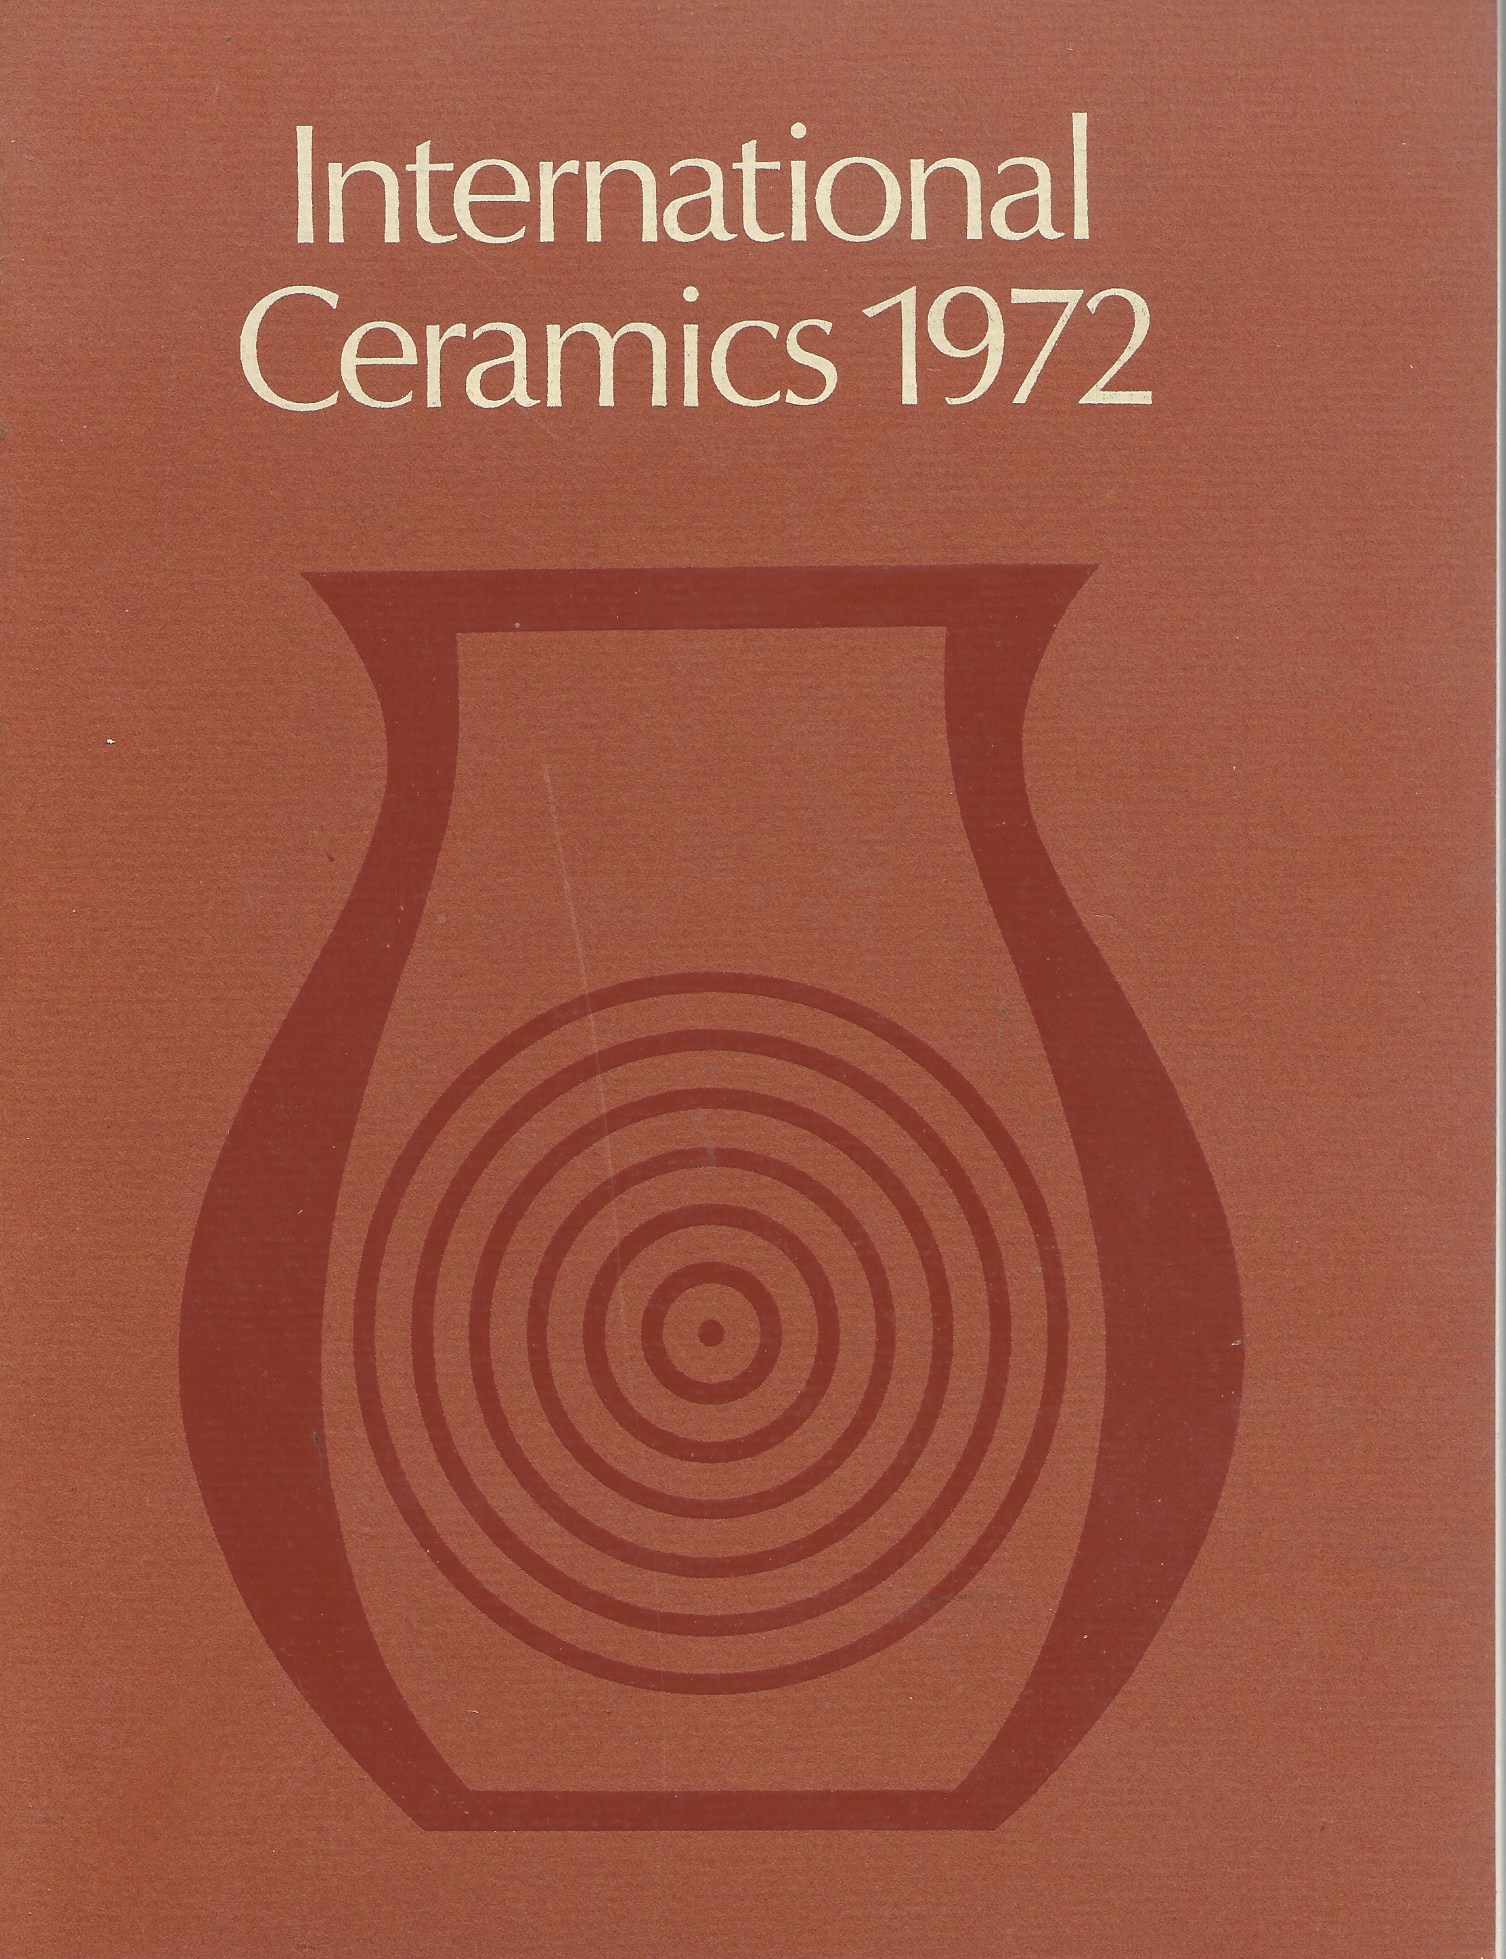 Image for INTERNATIONAL CERAMICS 1972